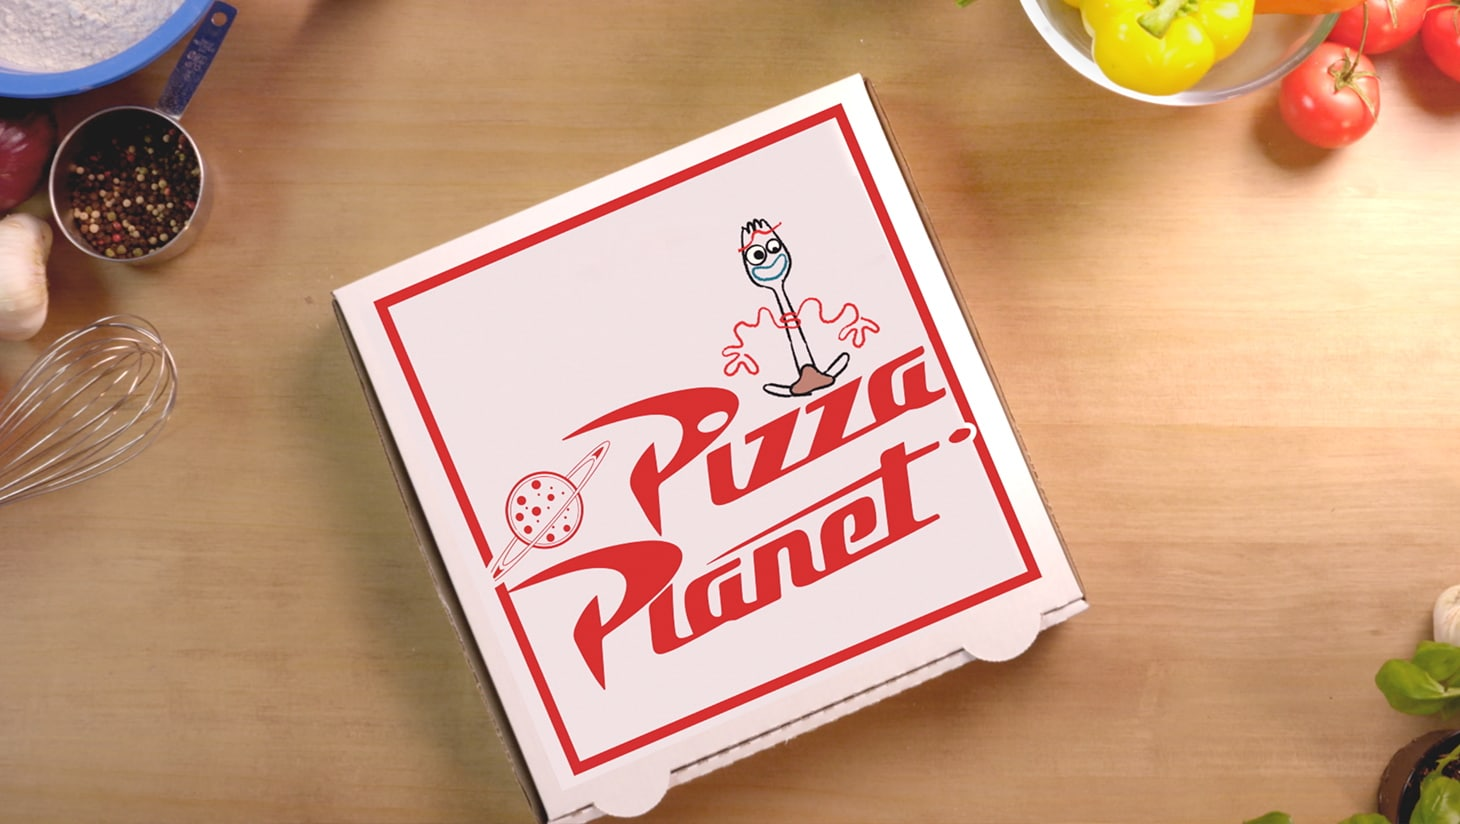 A Planet Pizza box with a drawing of Forky on it